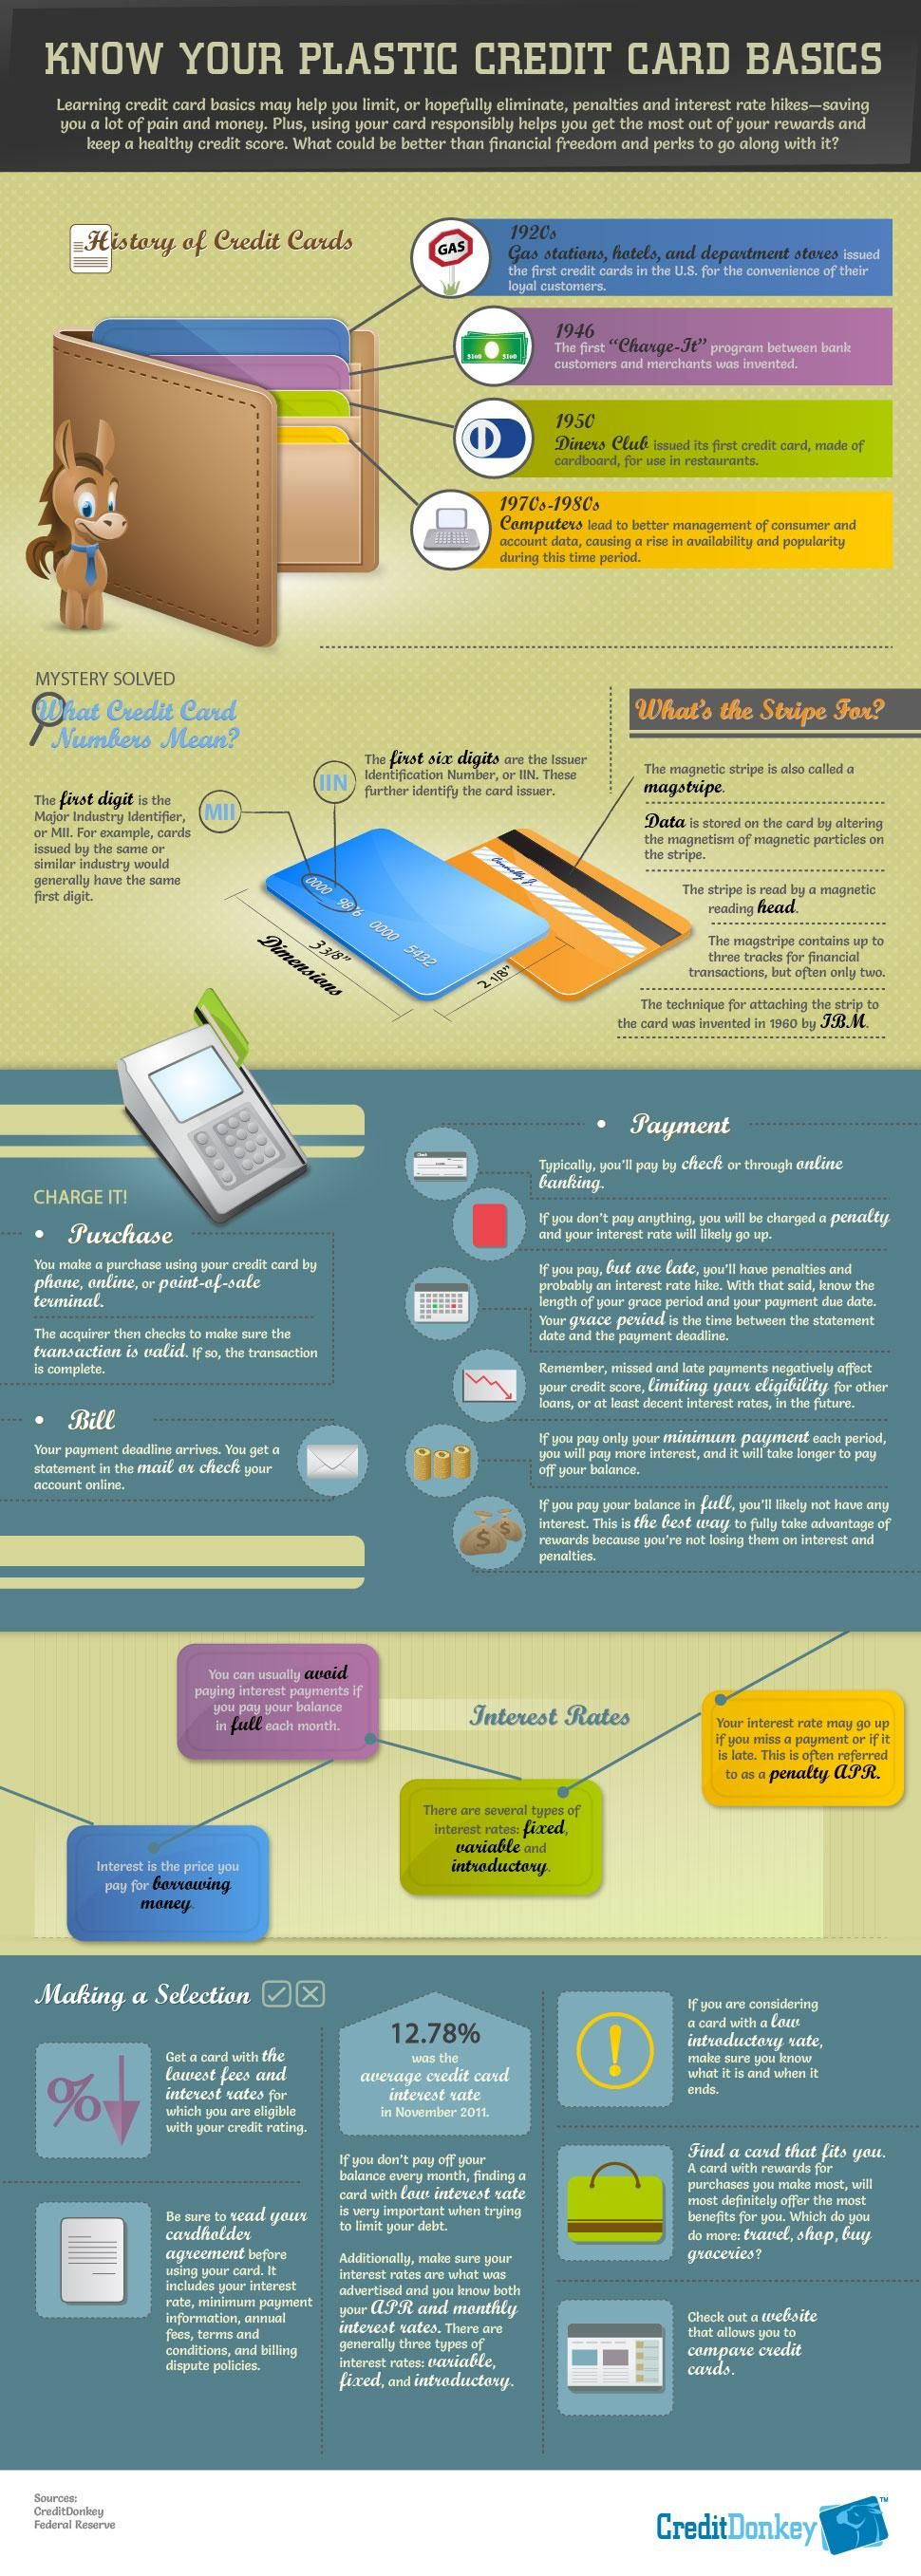 Infographic: How Credit Cards Work - Yes, this is a bit of spammy marketing from CreditDonkey ...